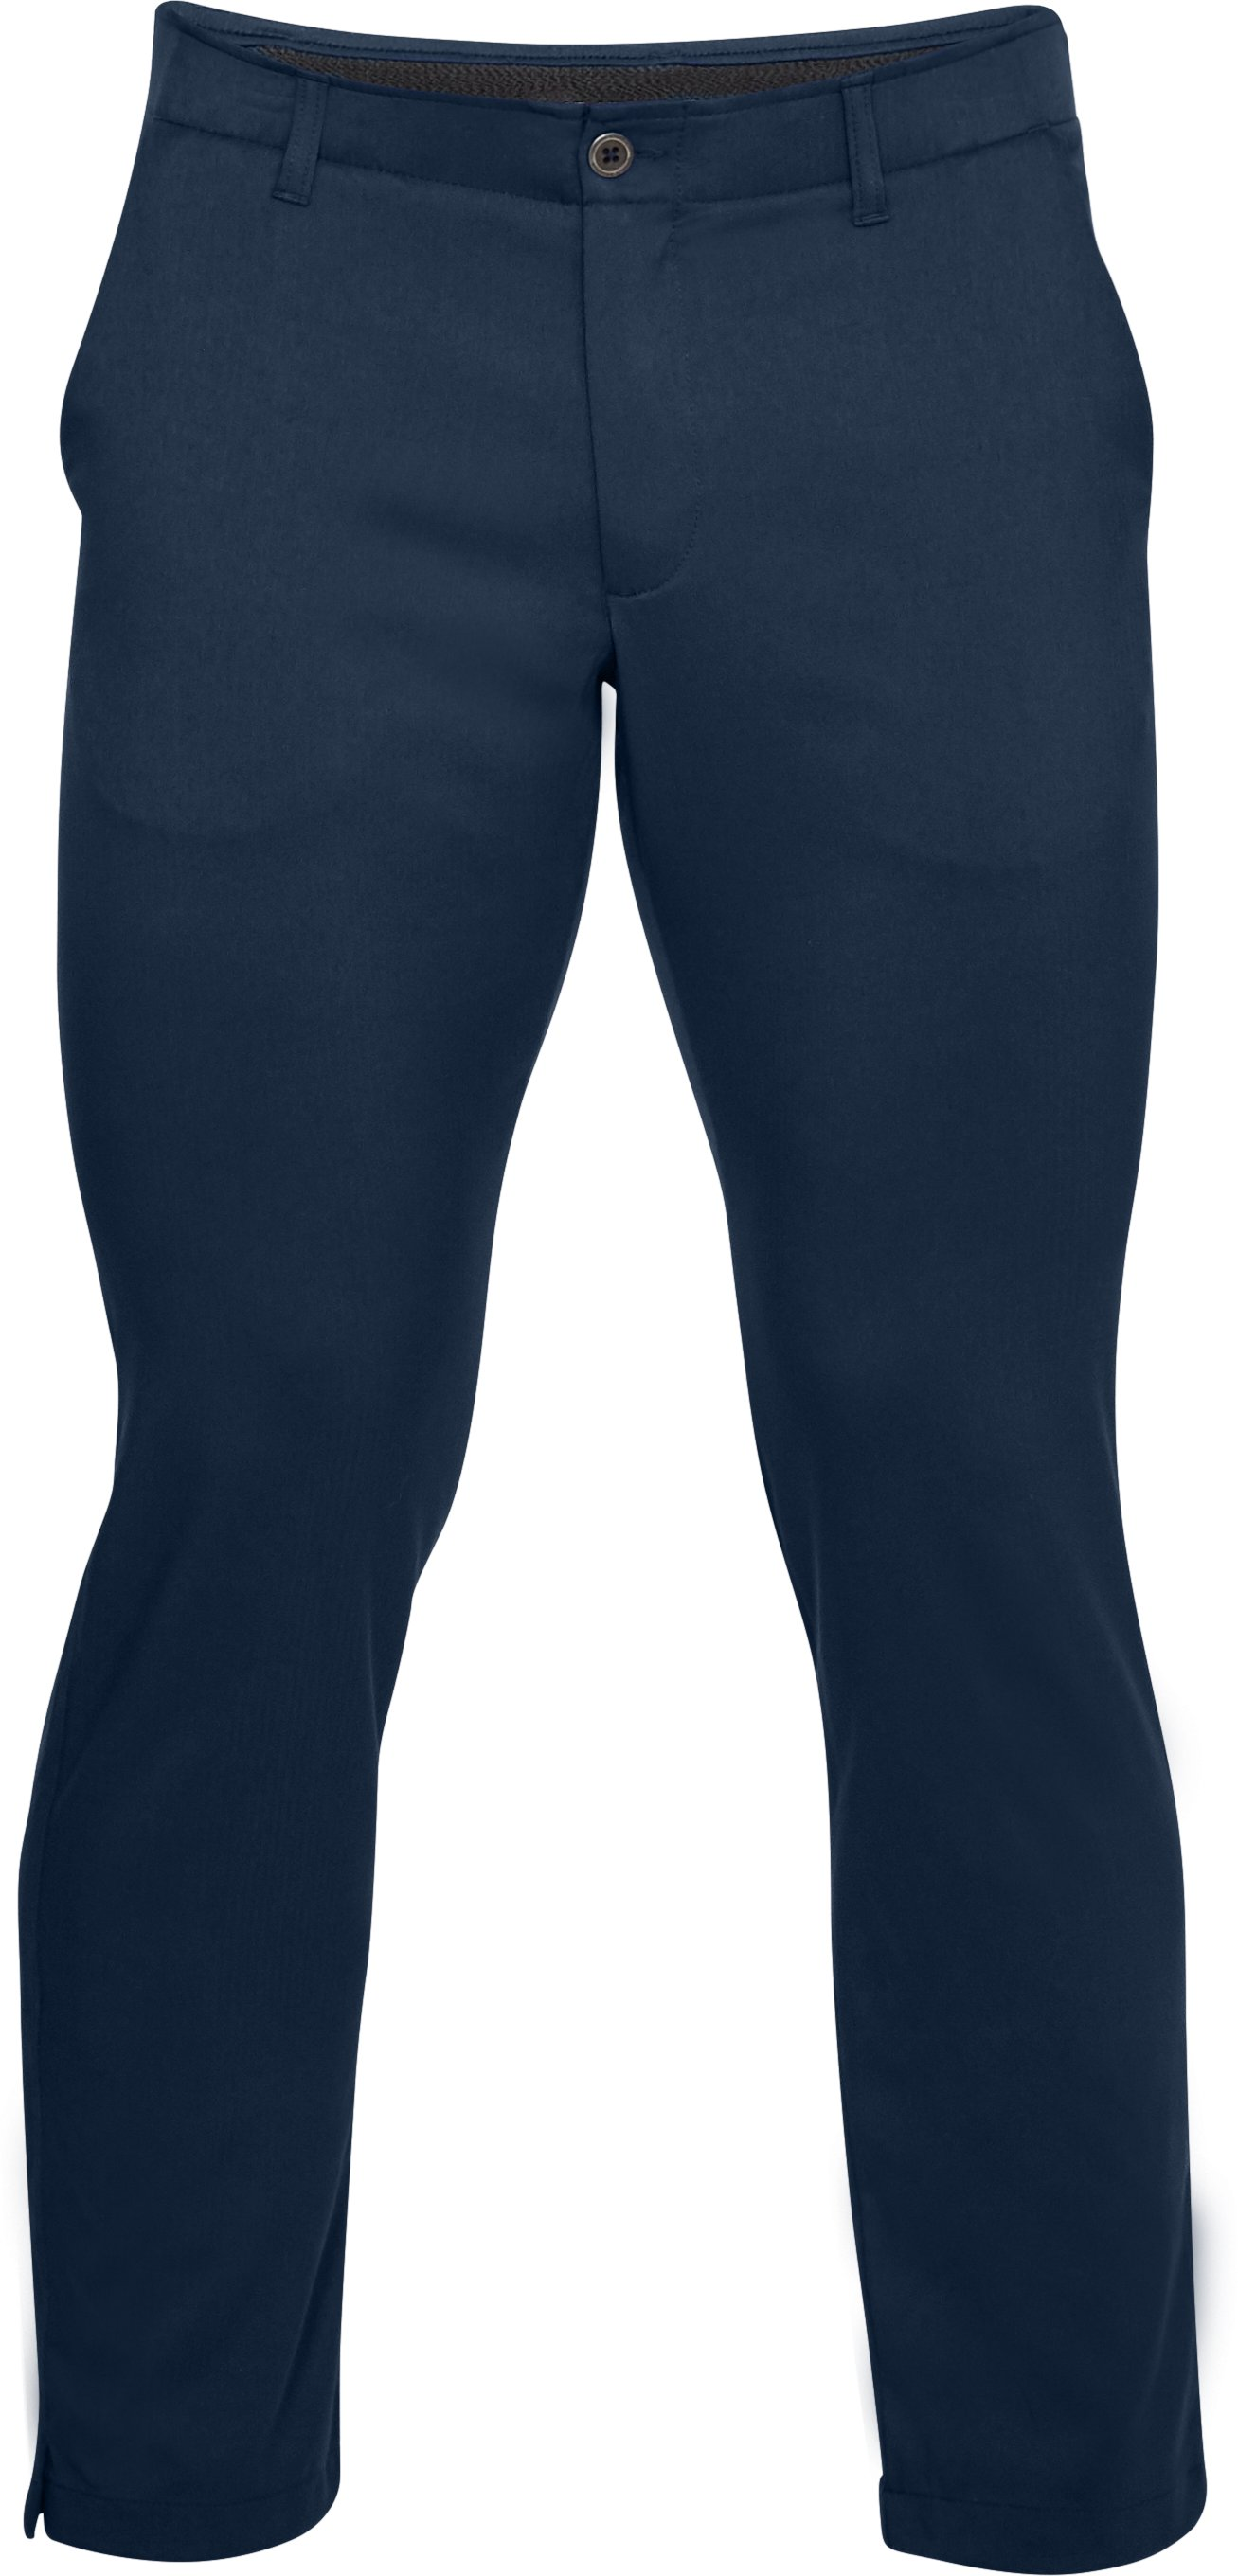 Men's UA Showdown Pants, Academy, undefined